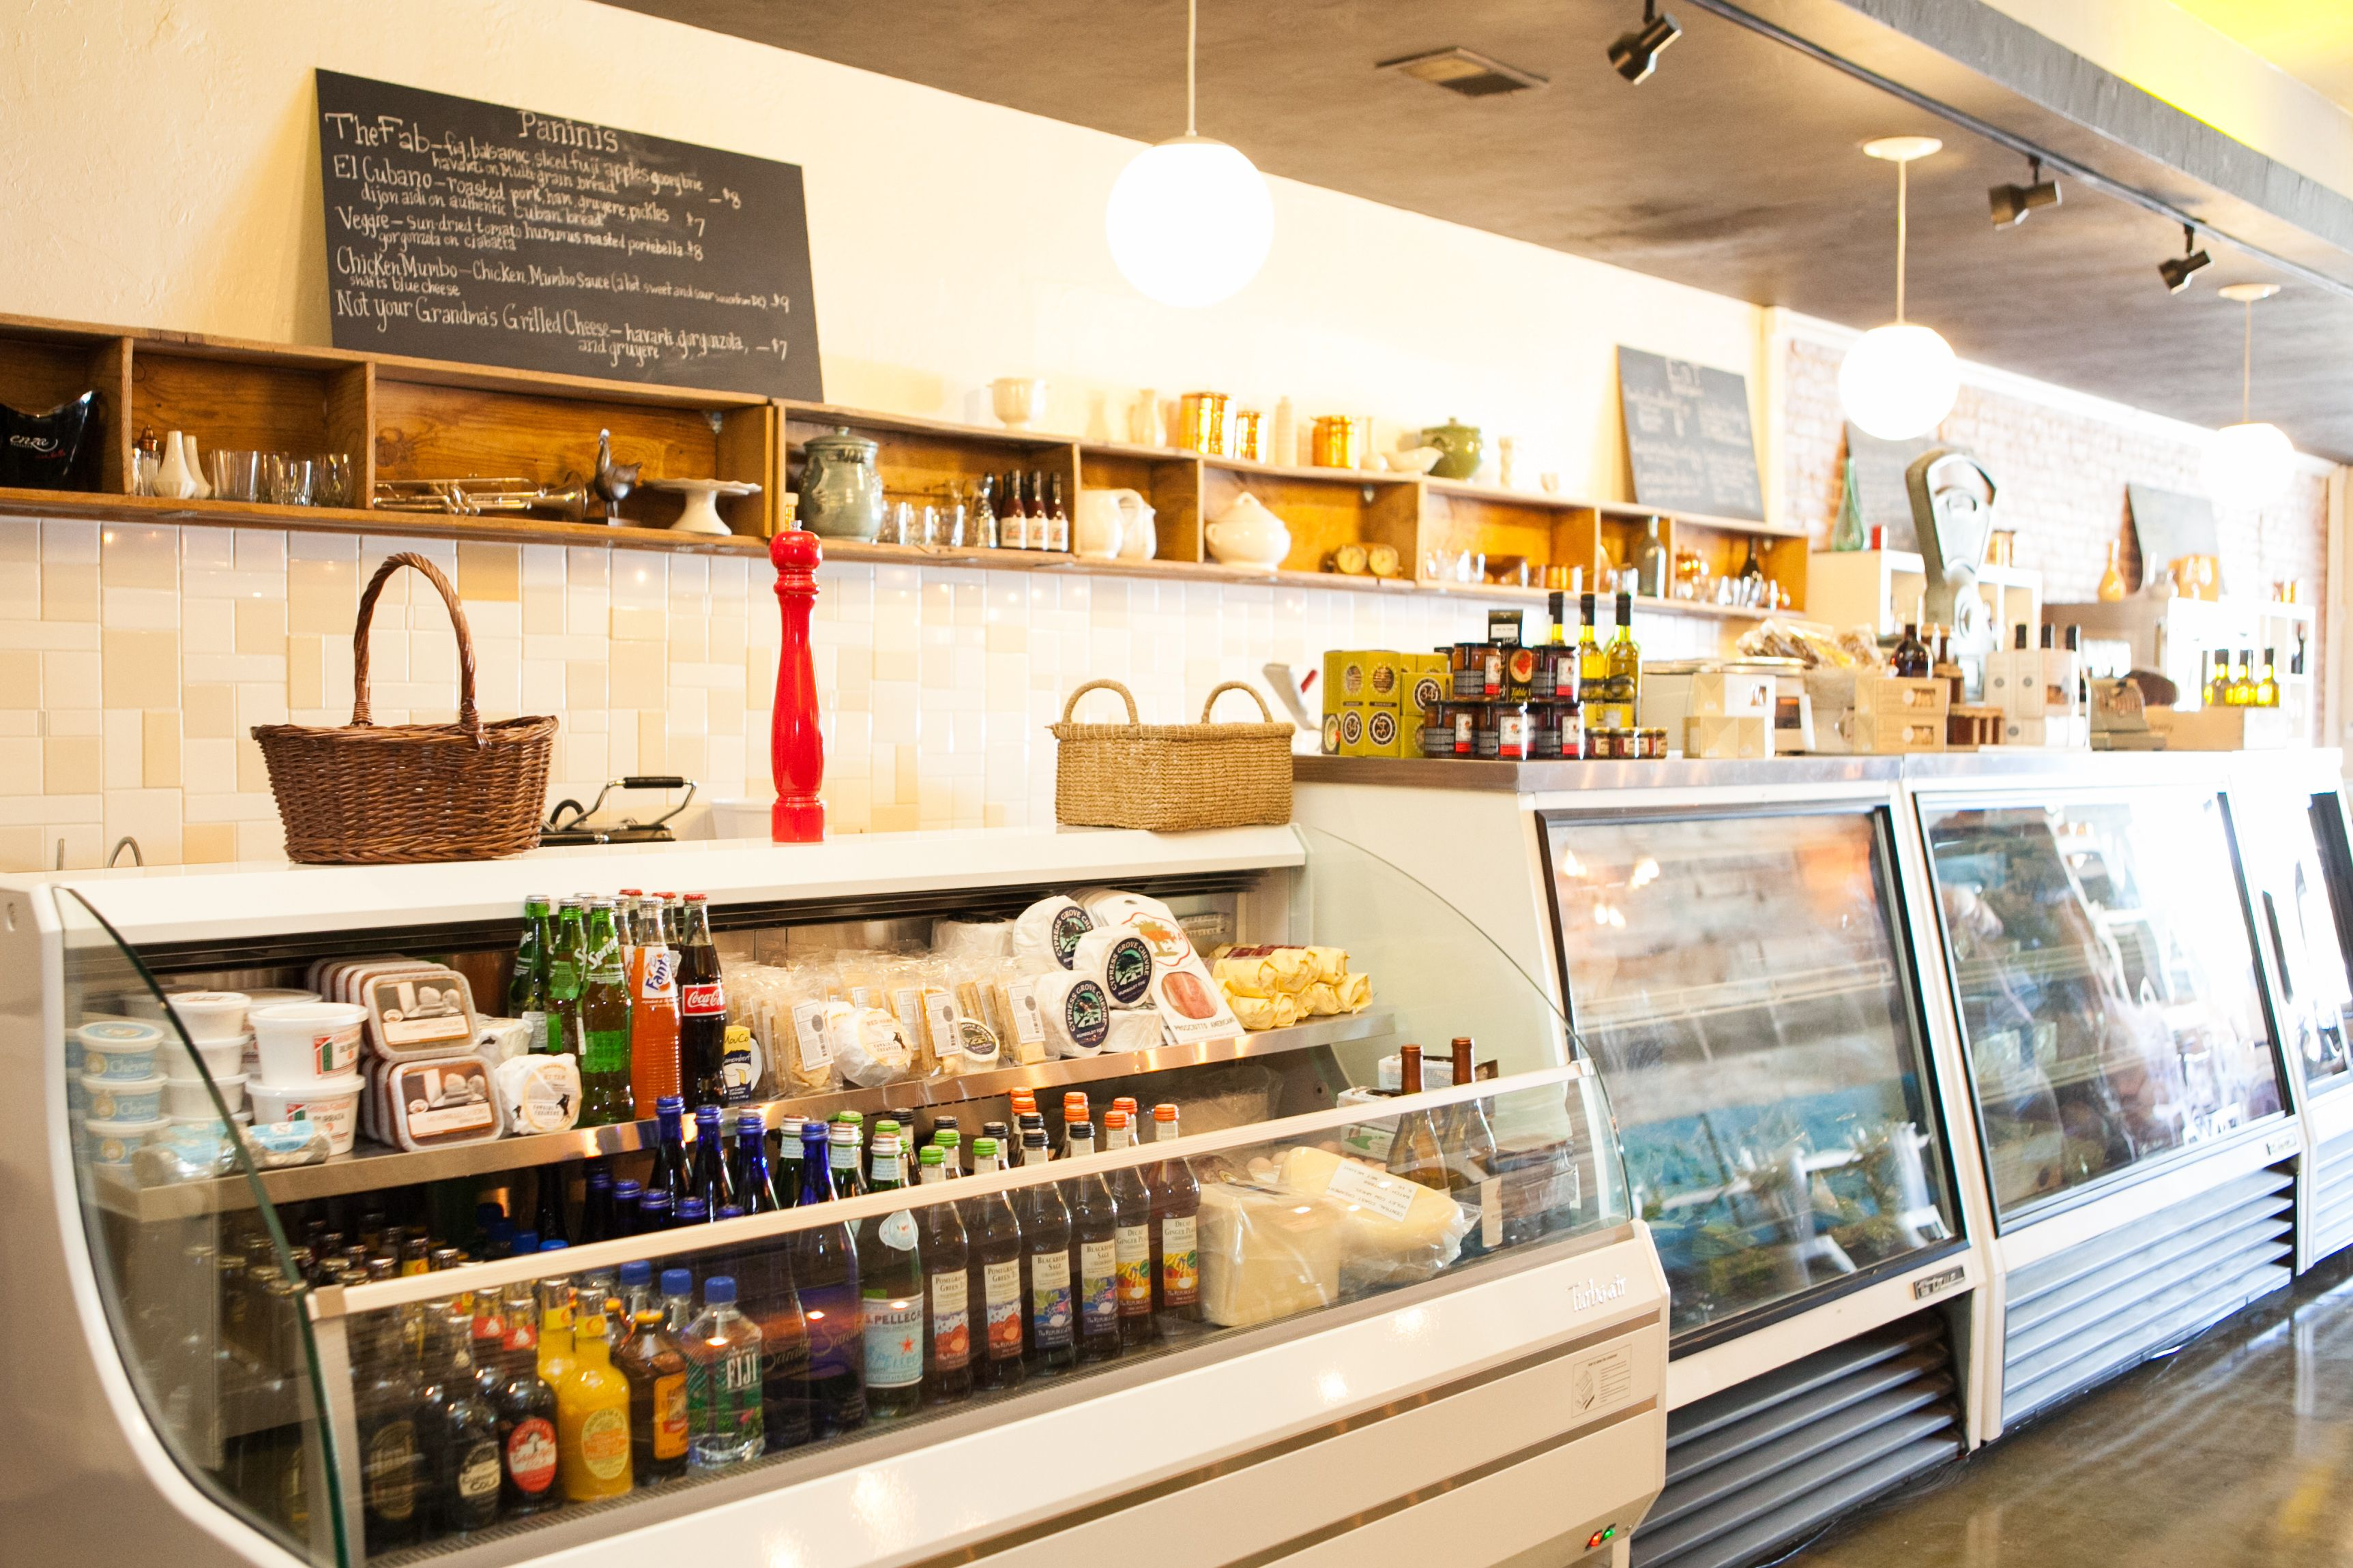 Deli counter. | Mile Wine Company Inside & Out | Pinterest | Deli ...